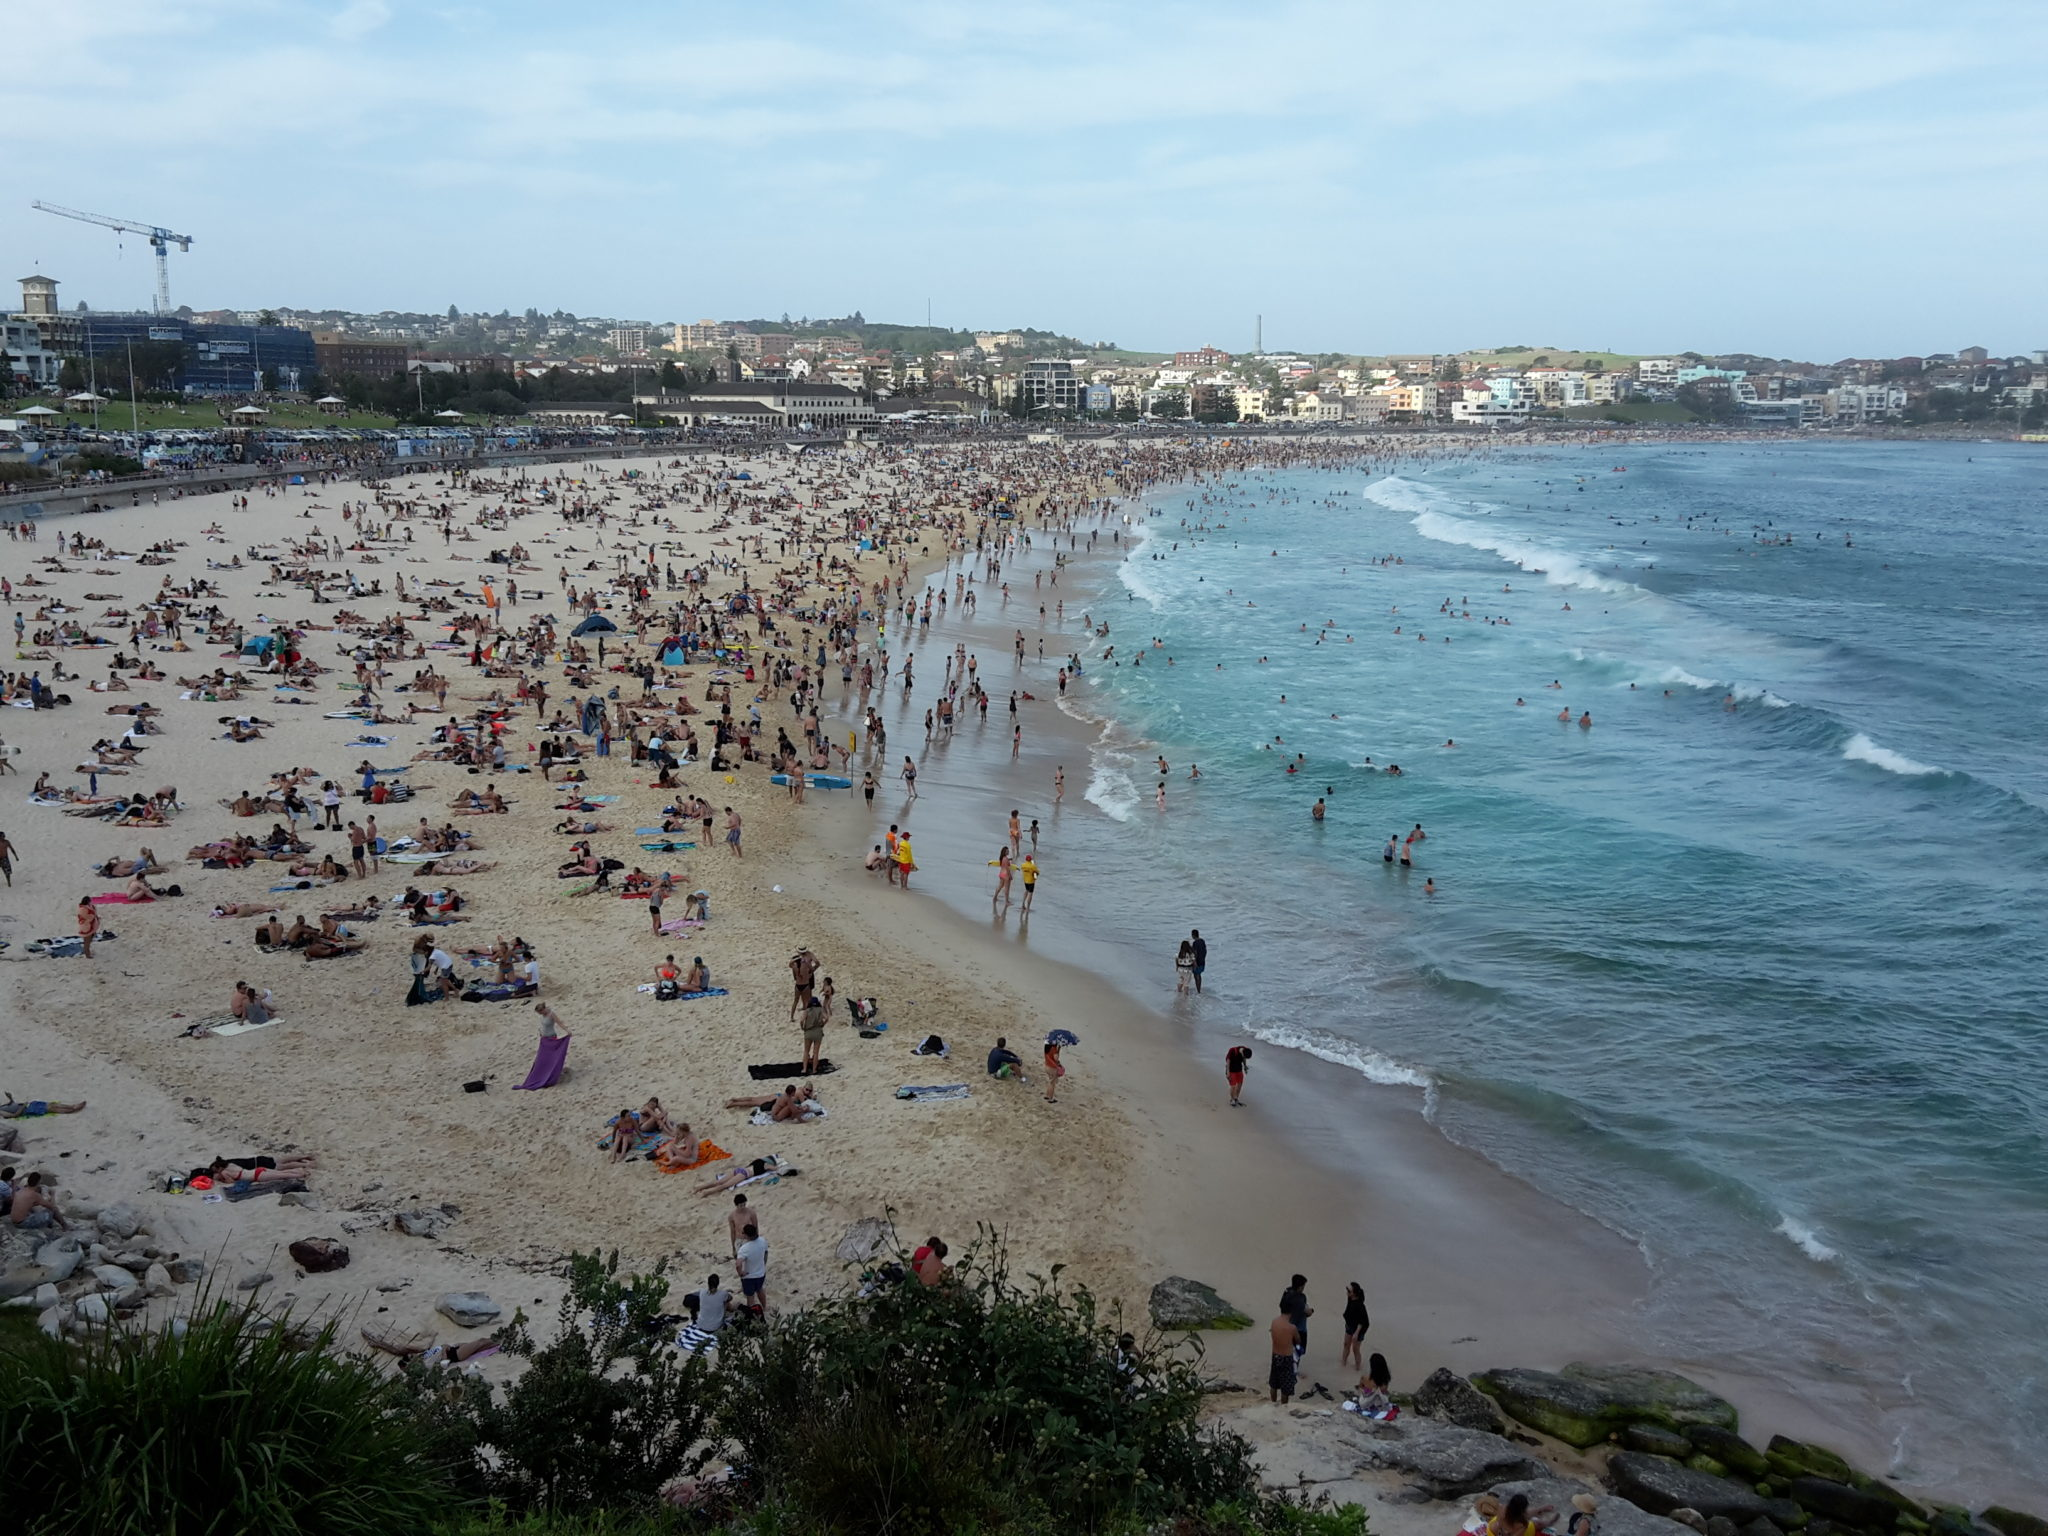 View towards Bondi Beach, Australia